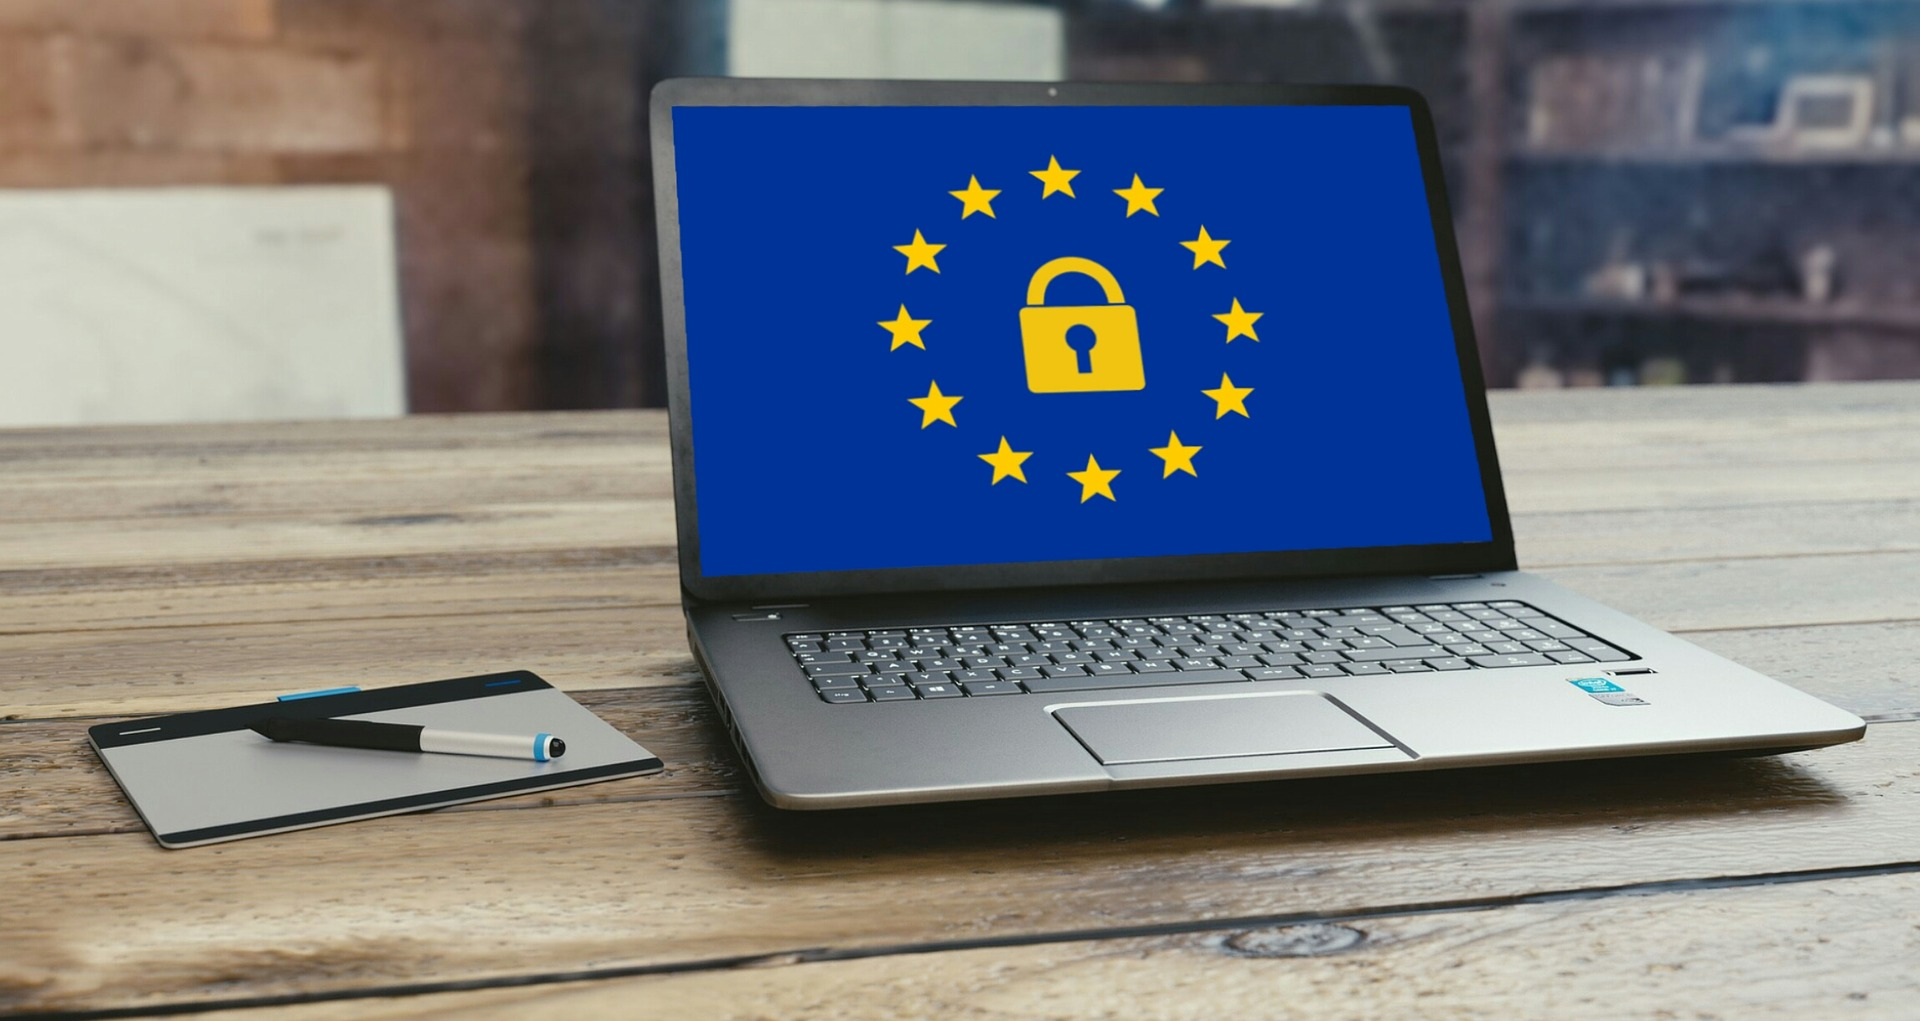 Understanding GDPR: The 6 lawful bases for processing data